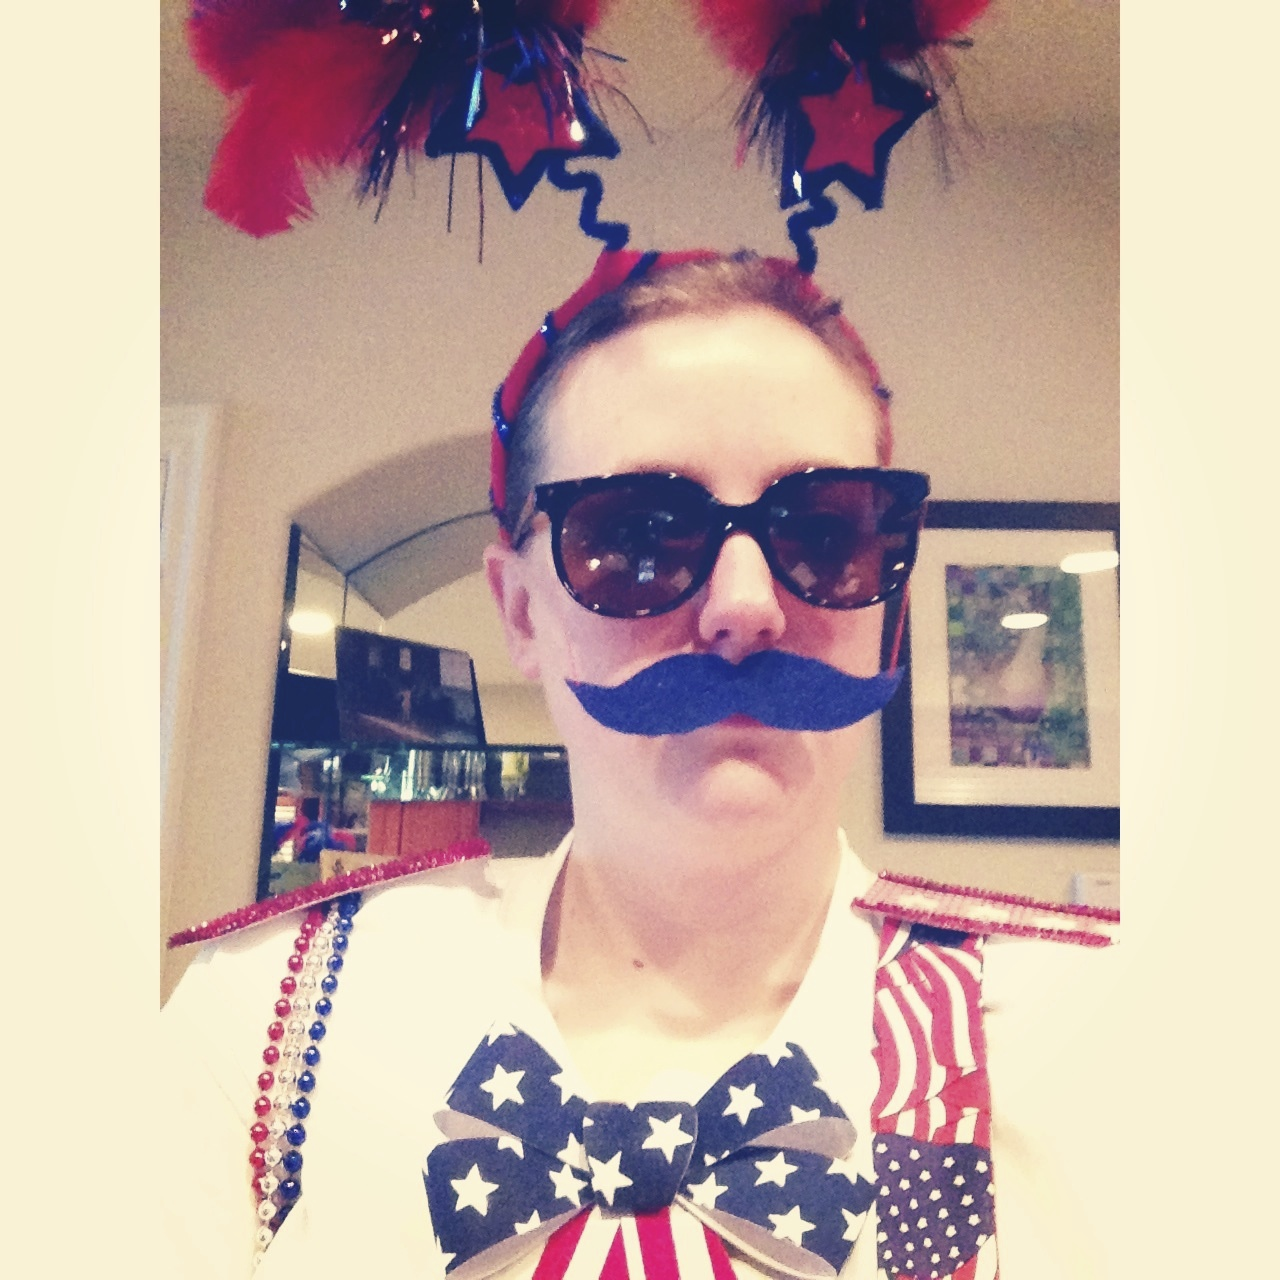 Just your normal 4th of July attire